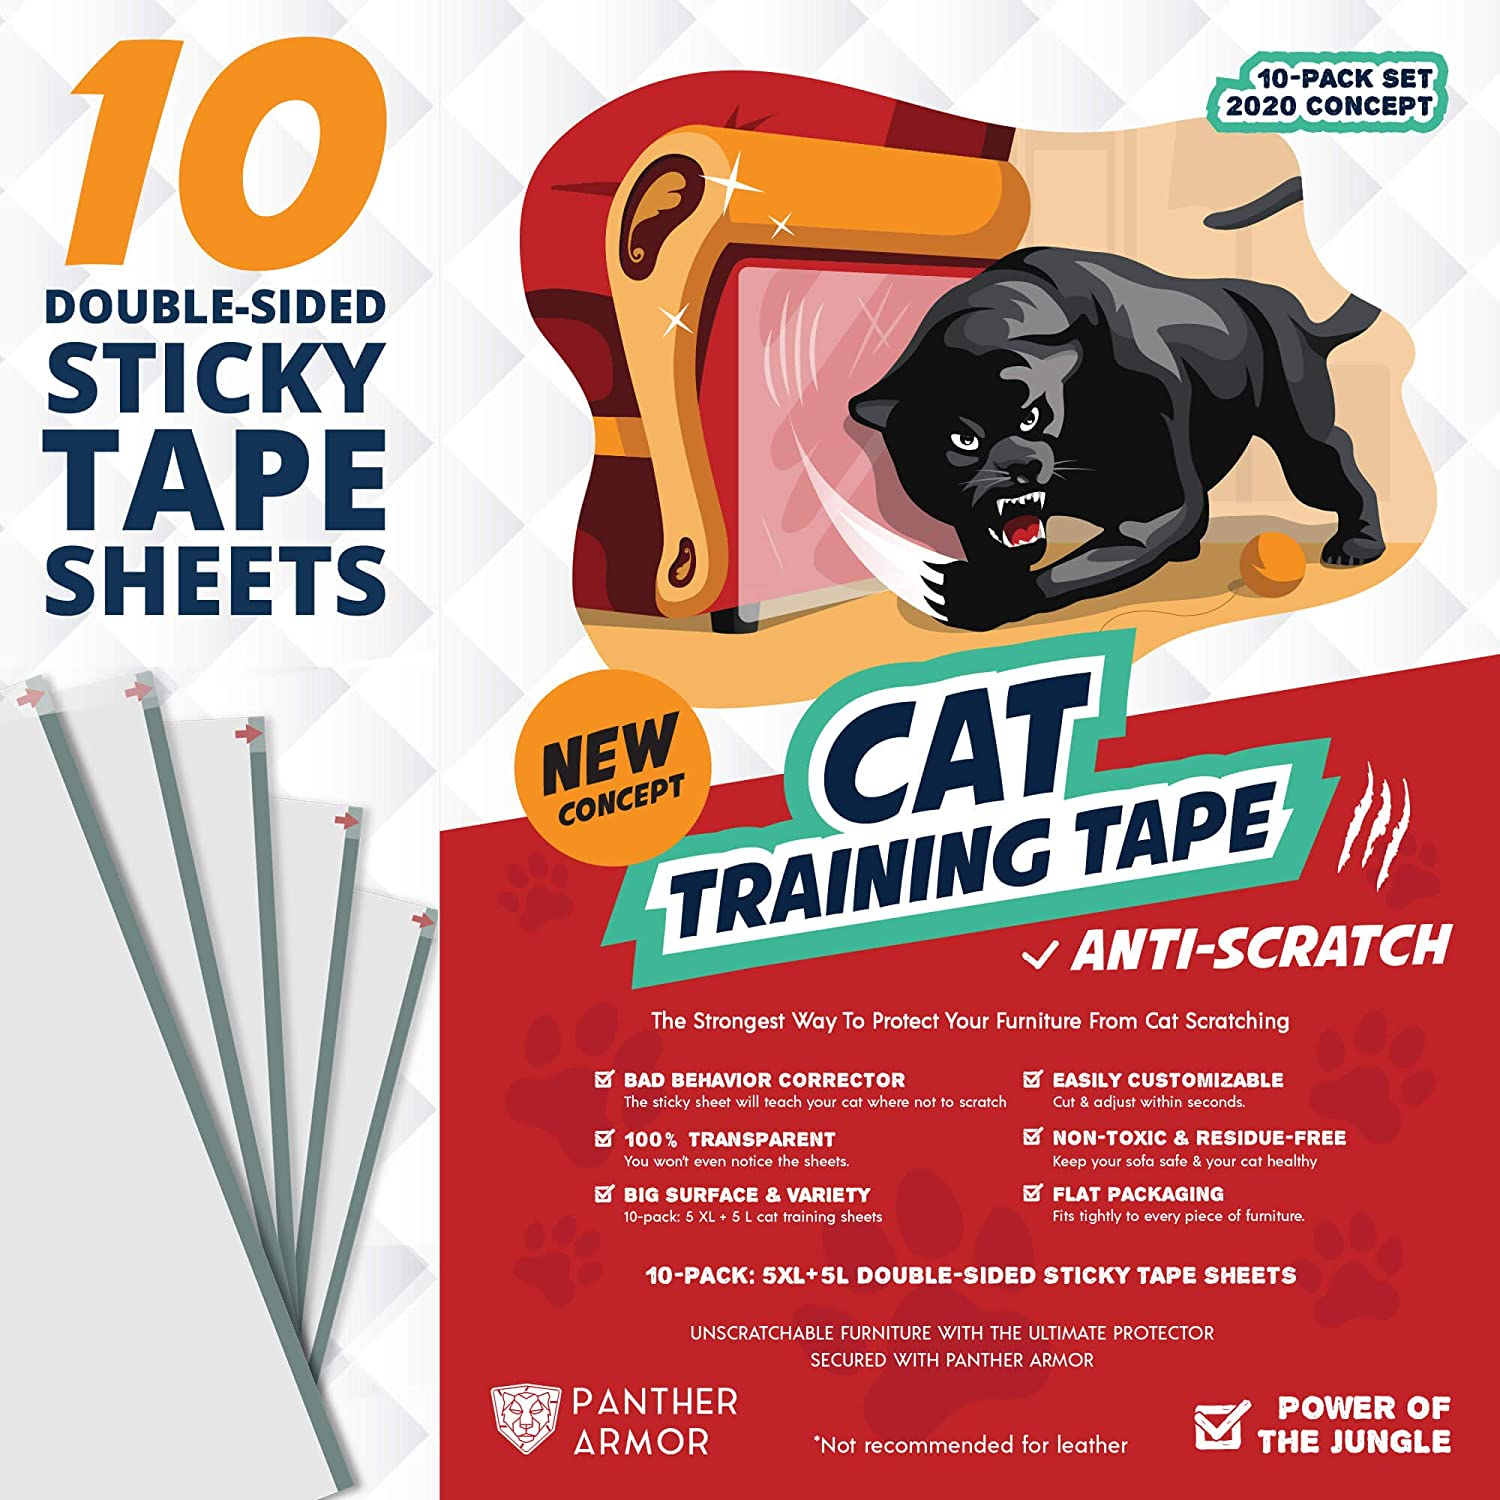 Panther Armor 10 Ten Pack Cat Scratch Deterrent Tape Double Sided Anti Cats Scratching Sticky Tape 5 Pack Xl 16 L 12 W 5 Pack Large 17 L 10 W Furniture Protectors Clear Training